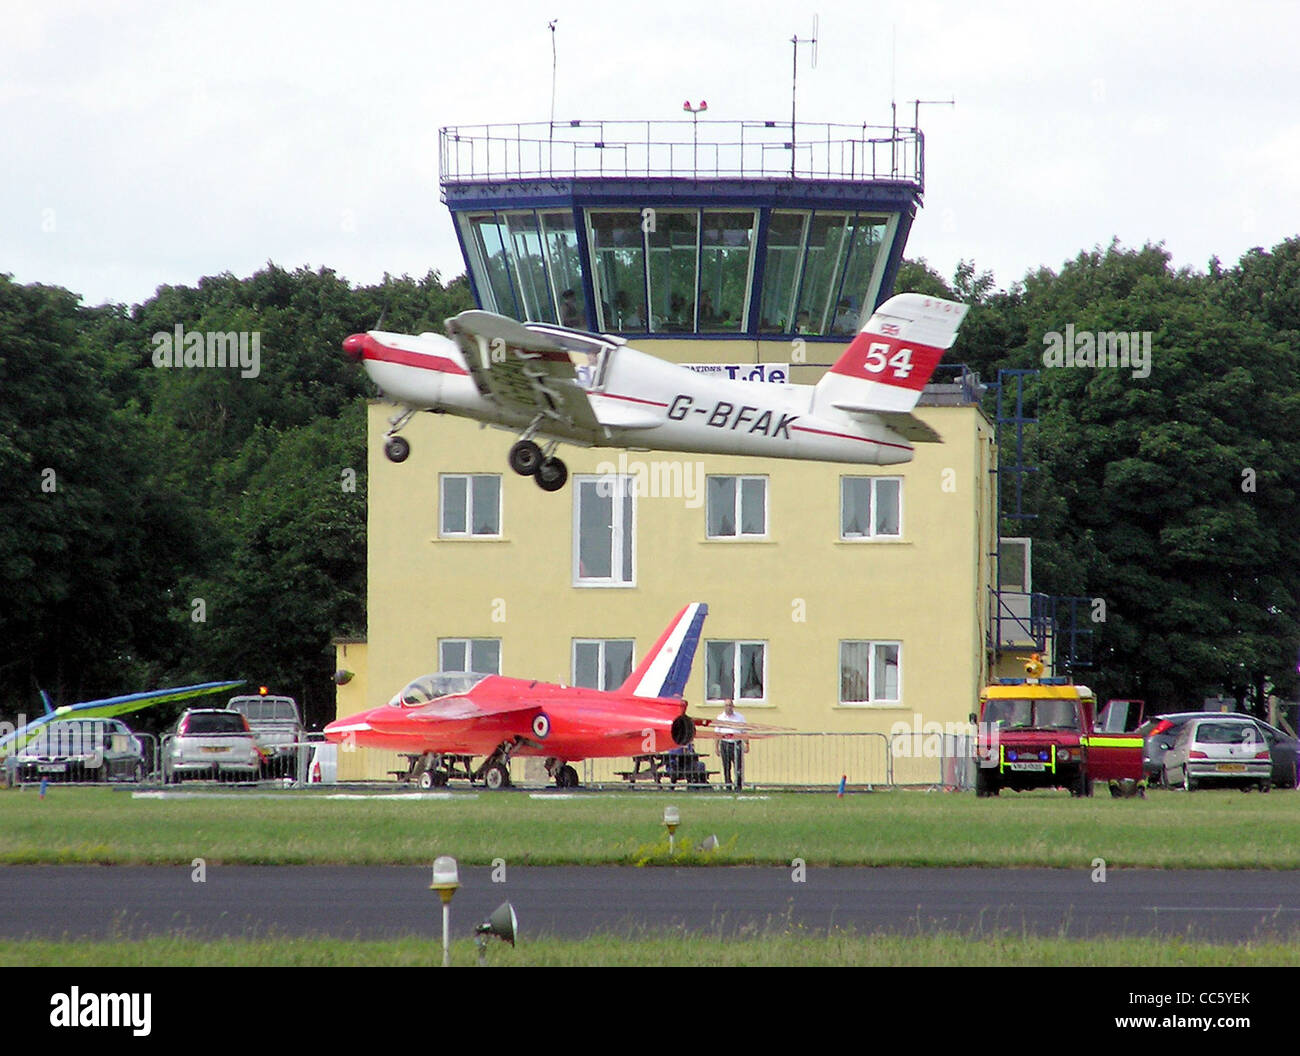 Kemble Airfield control tower, Gloucestershire, England - Stock Image